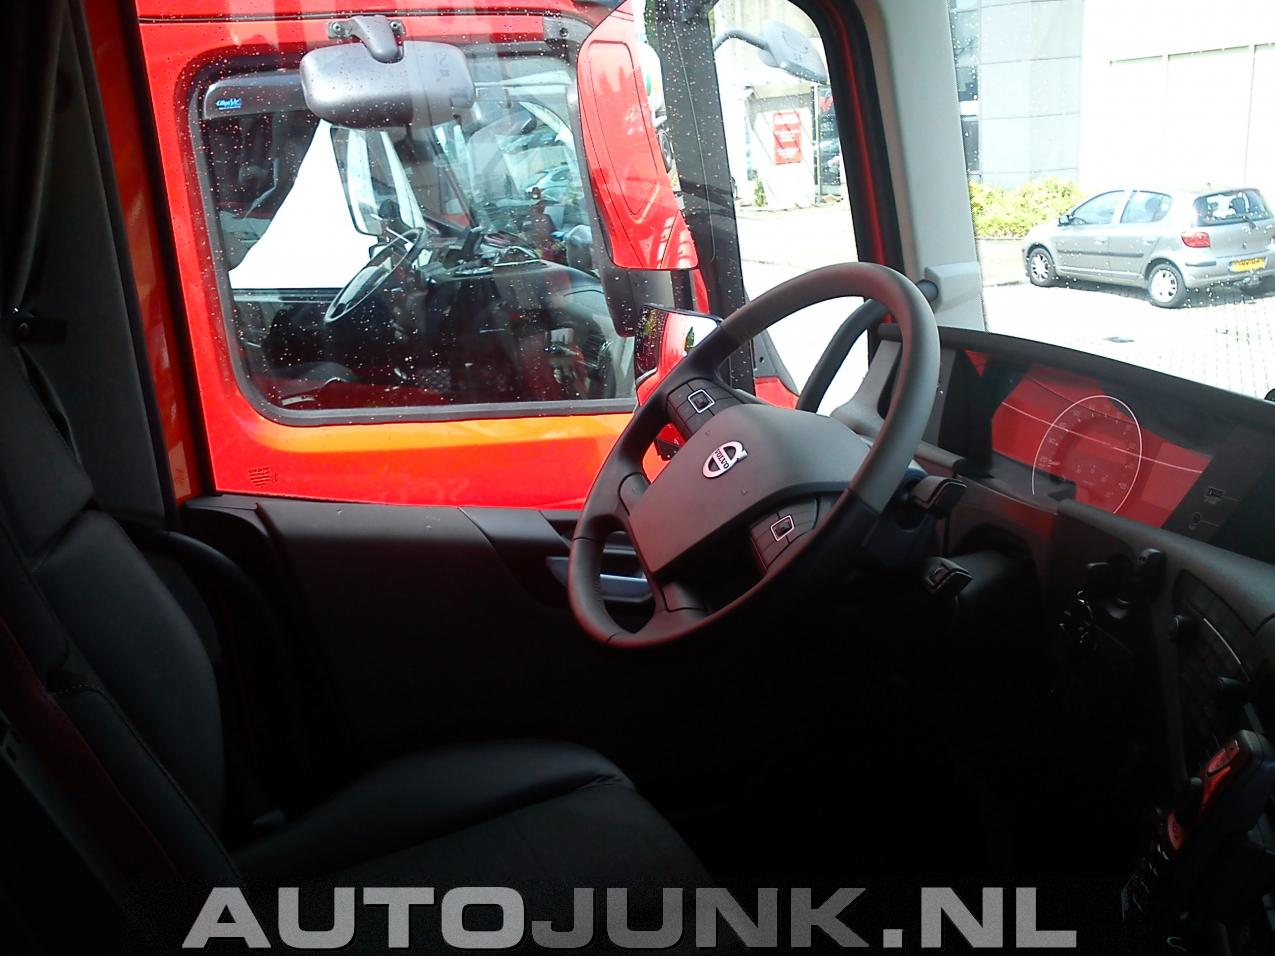 Marvelous Peterbilt En Nieuwe Volvo Fh Fotos Autojunk Nl 103878 Ocoug Best Dining Table And Chair Ideas Images Ocougorg